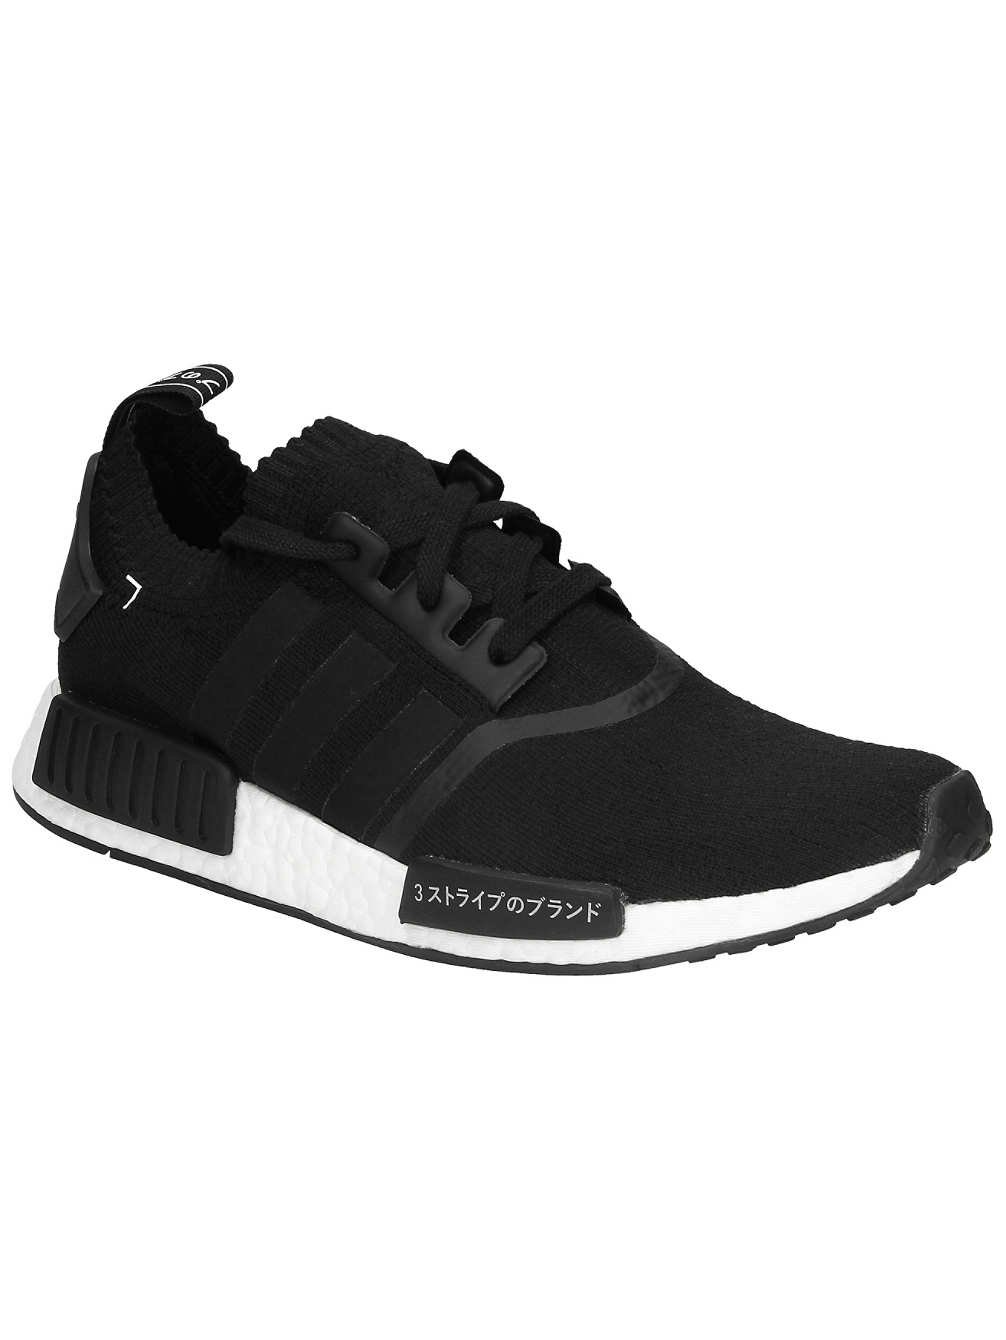 Nmd R1 Japan Black Off 56 Www Butc Co Za